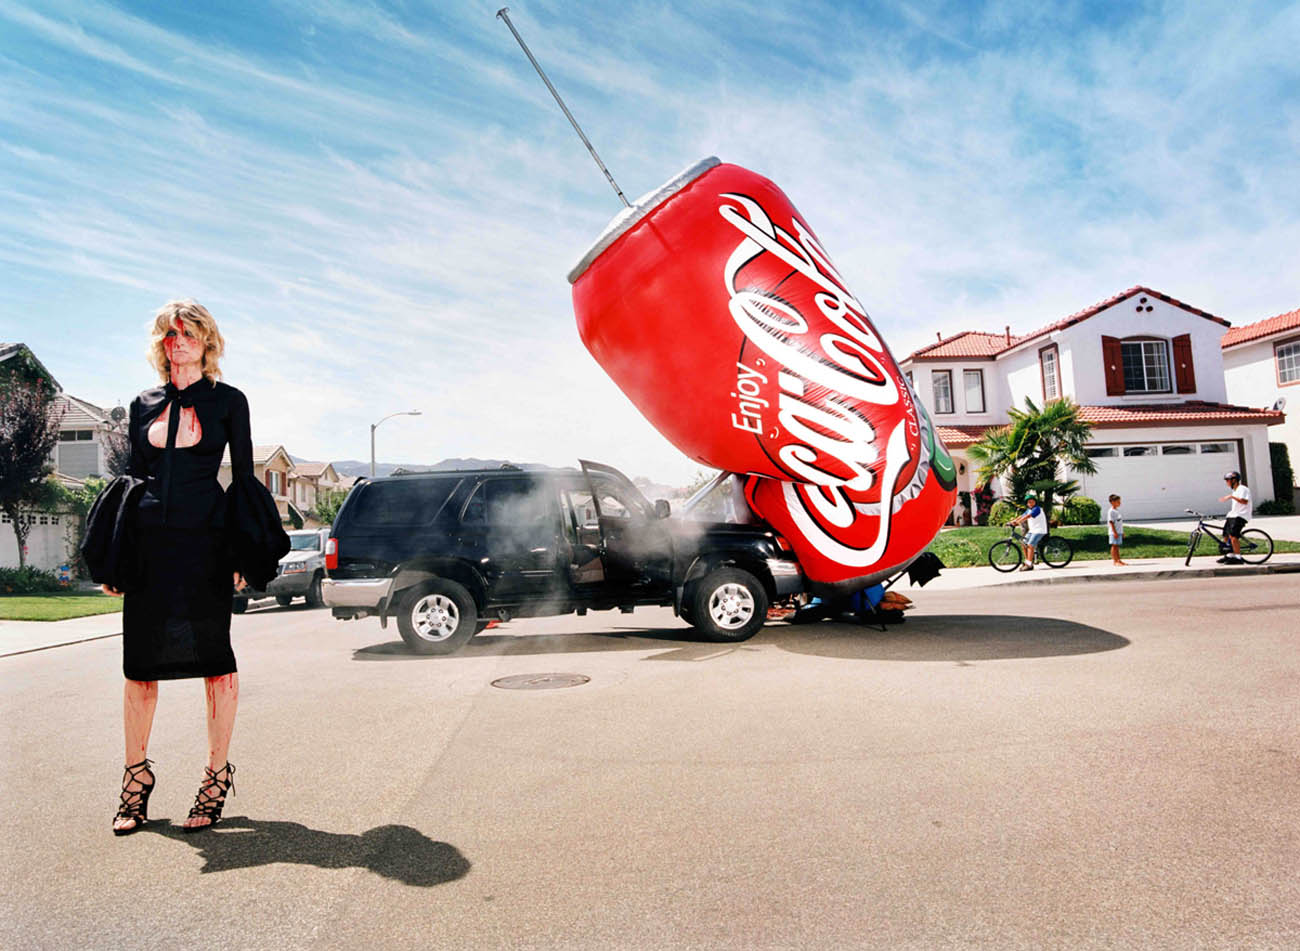 I Buy Big Car for Shopping by David LaChapelle - Guy Hepner